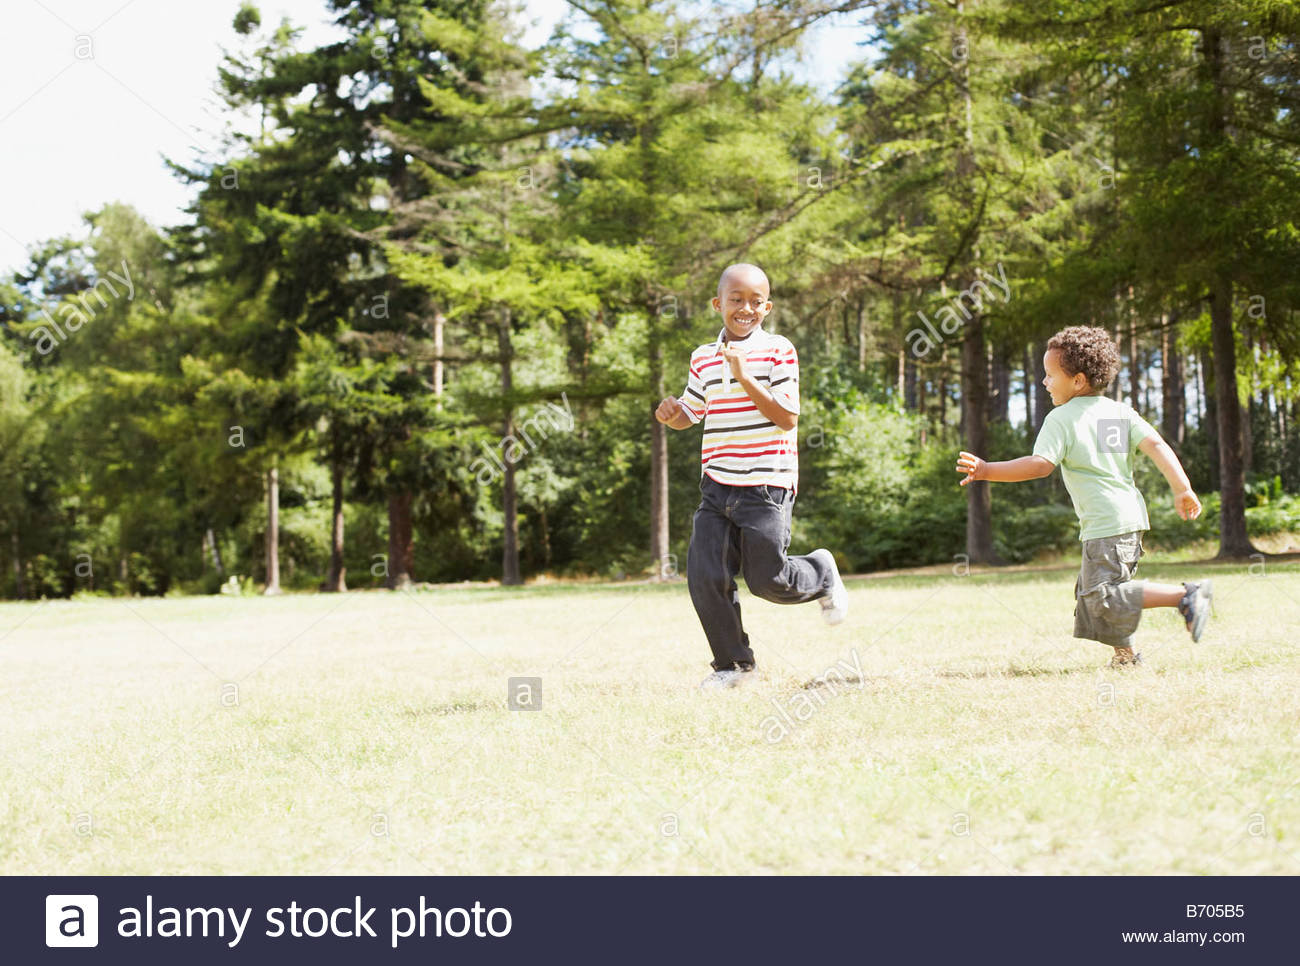 Brothers running together in park - Stock Image